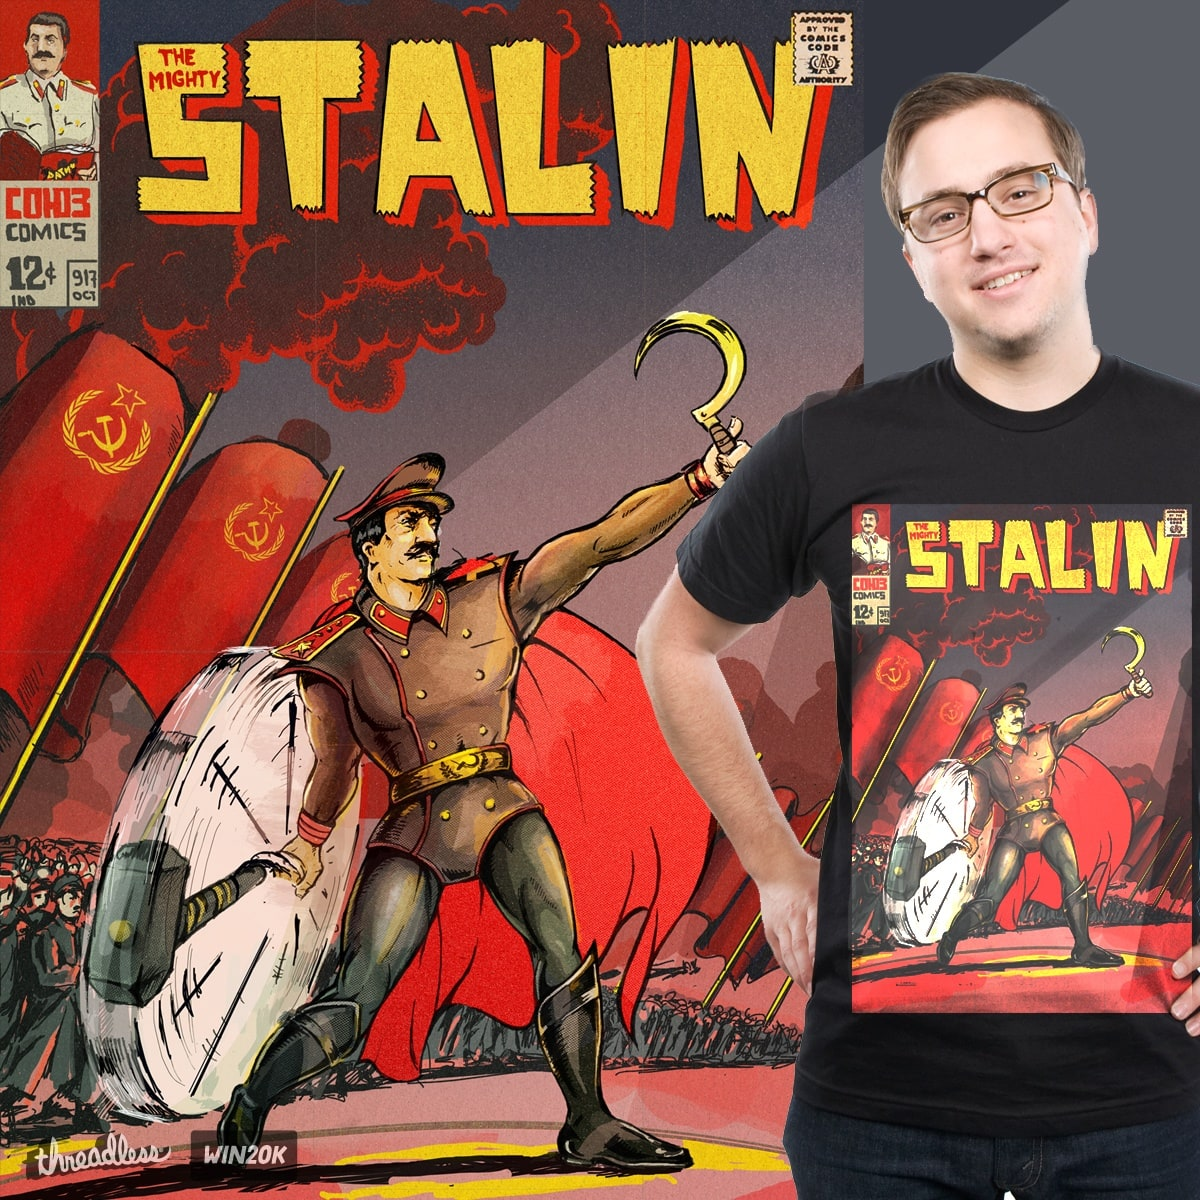 The Mighty Stalin by paper_cranium on Threadless